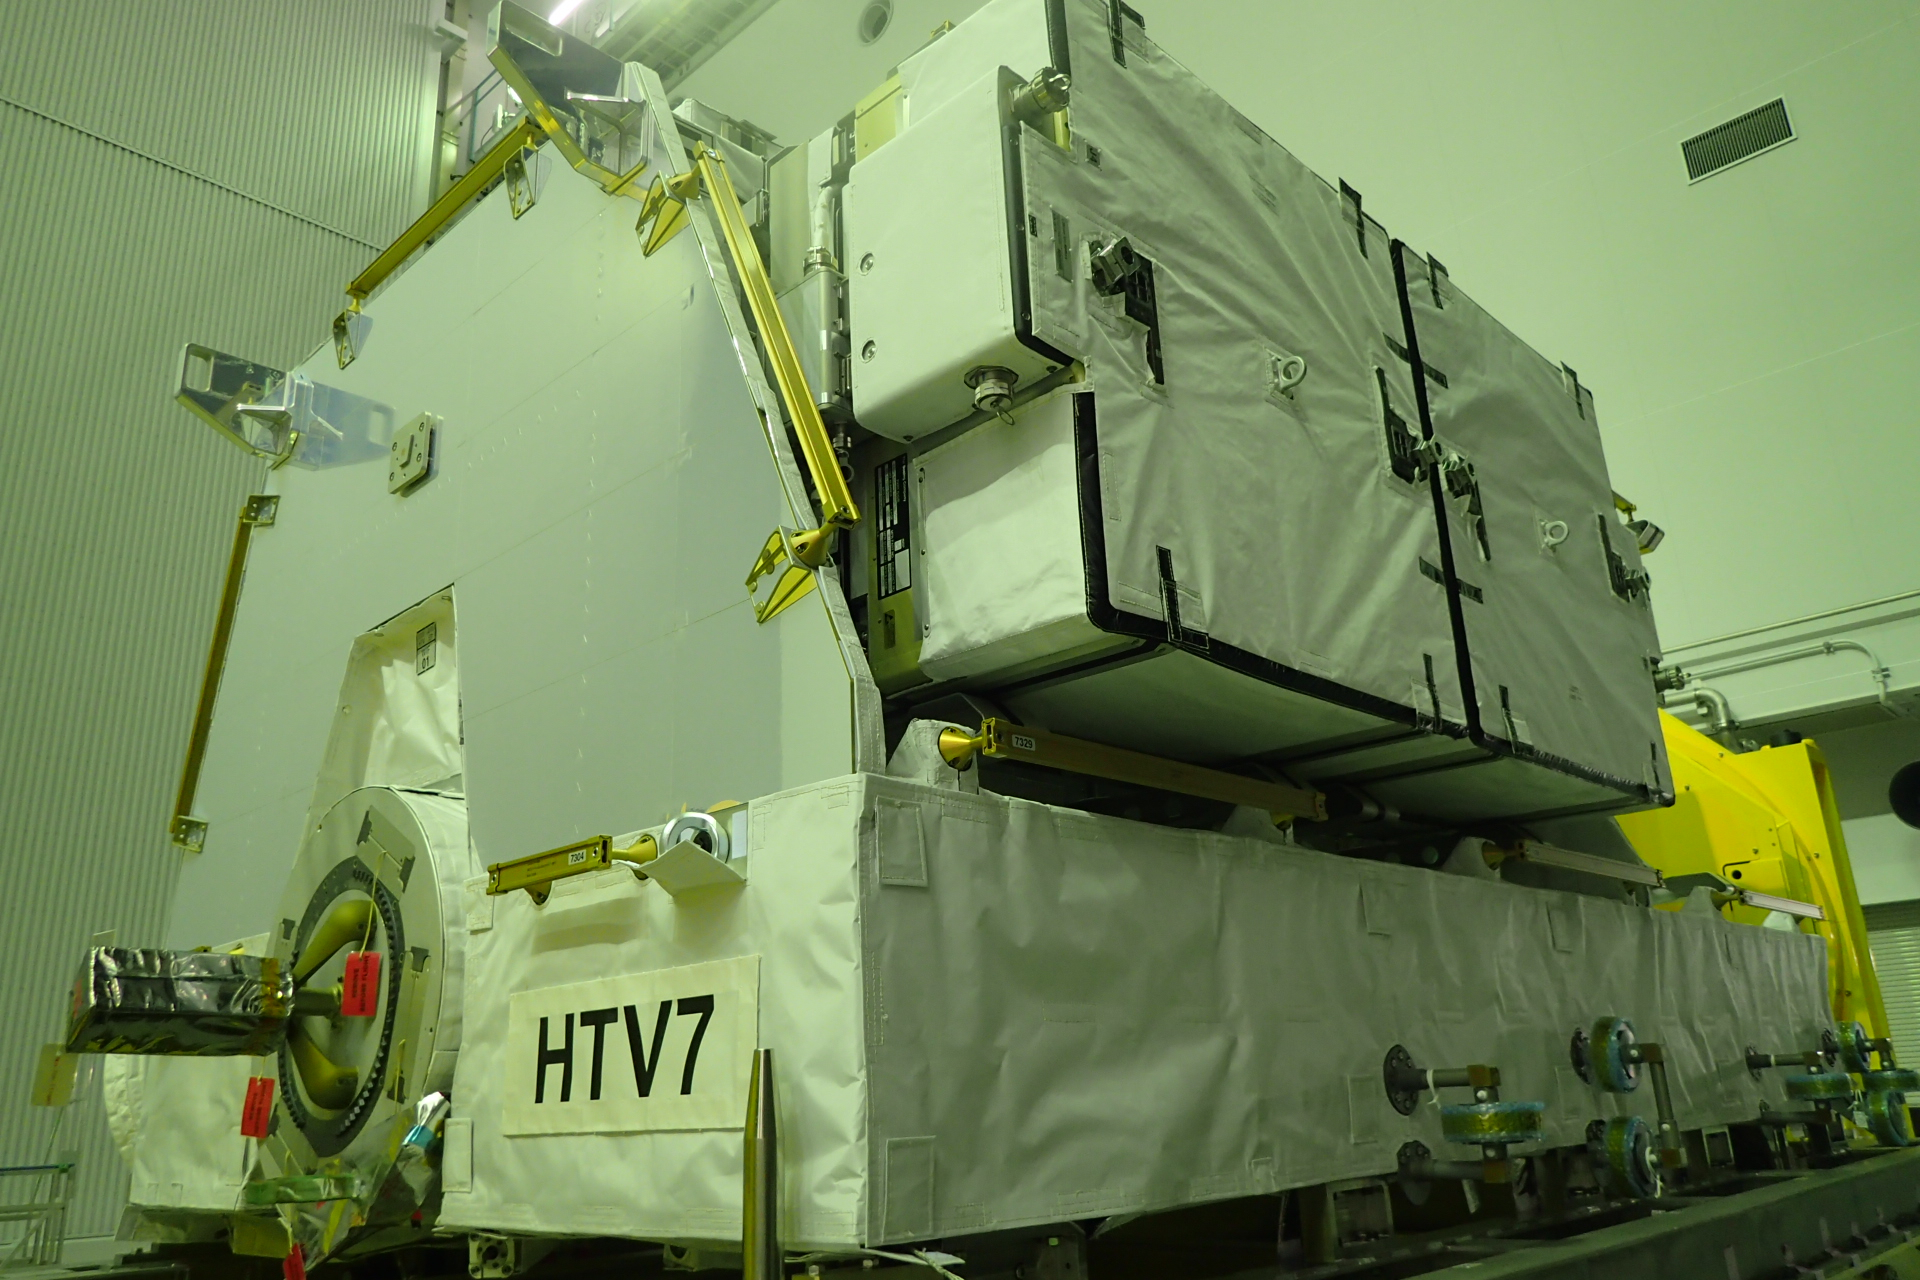 The lithium-ion batteries loaded on an exposed pallet that will be placed inside the Unpressurized Logistic Carrier. Two of the batteries, right, can be seen. A total of six fit on the platform. Credit: JAXA